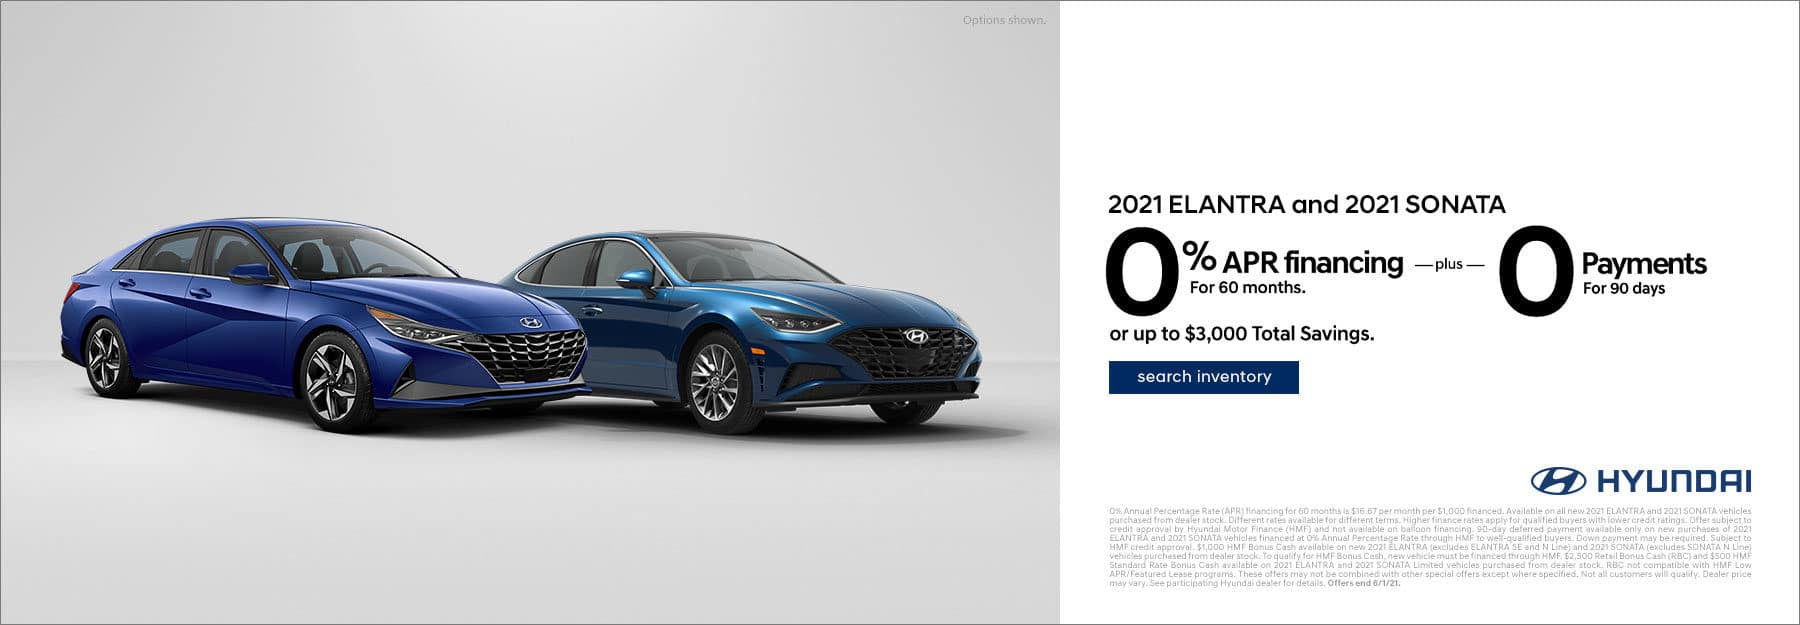 2021 Elantra and 2021 Sonata 0% APR